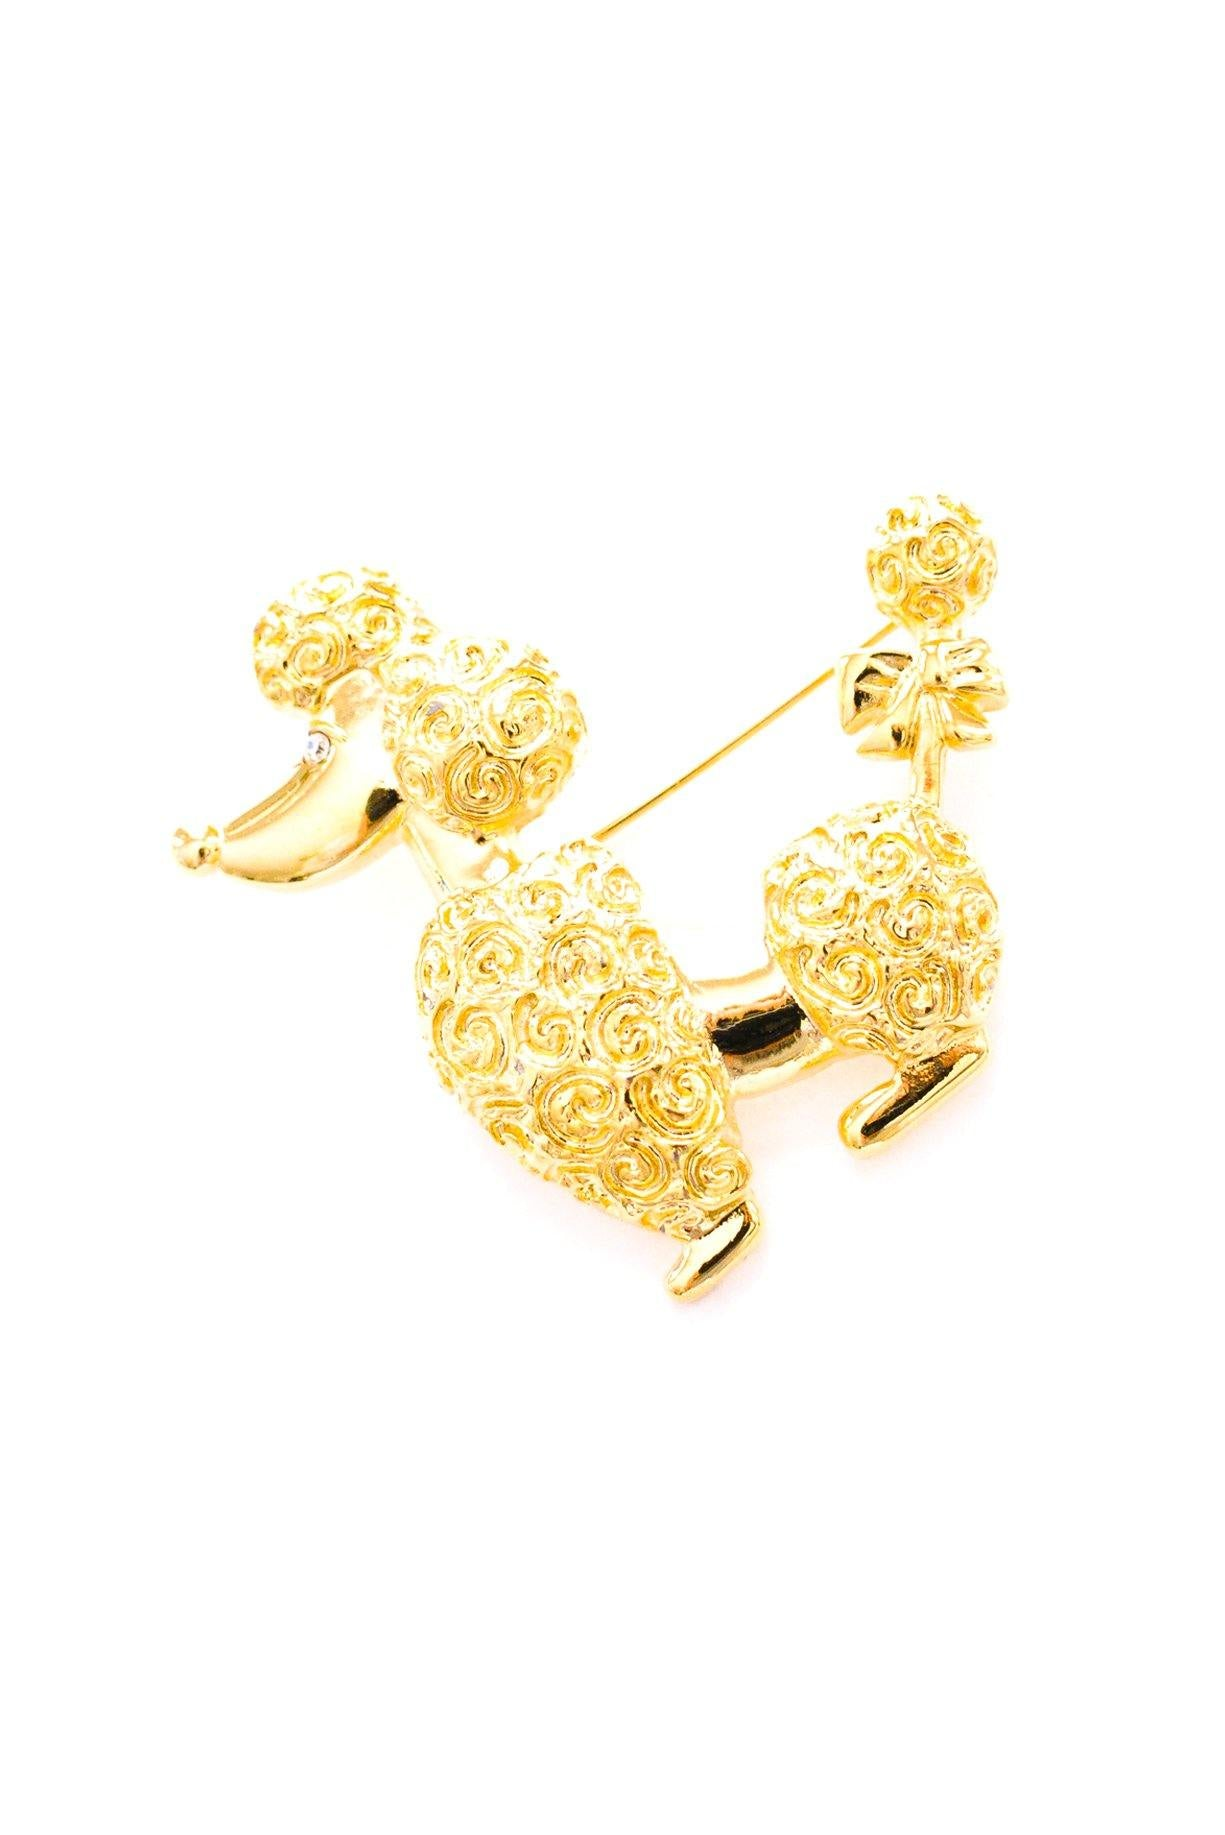 Vintage Anne Klein Poodle Dog Brooch from Sweet & Spark.